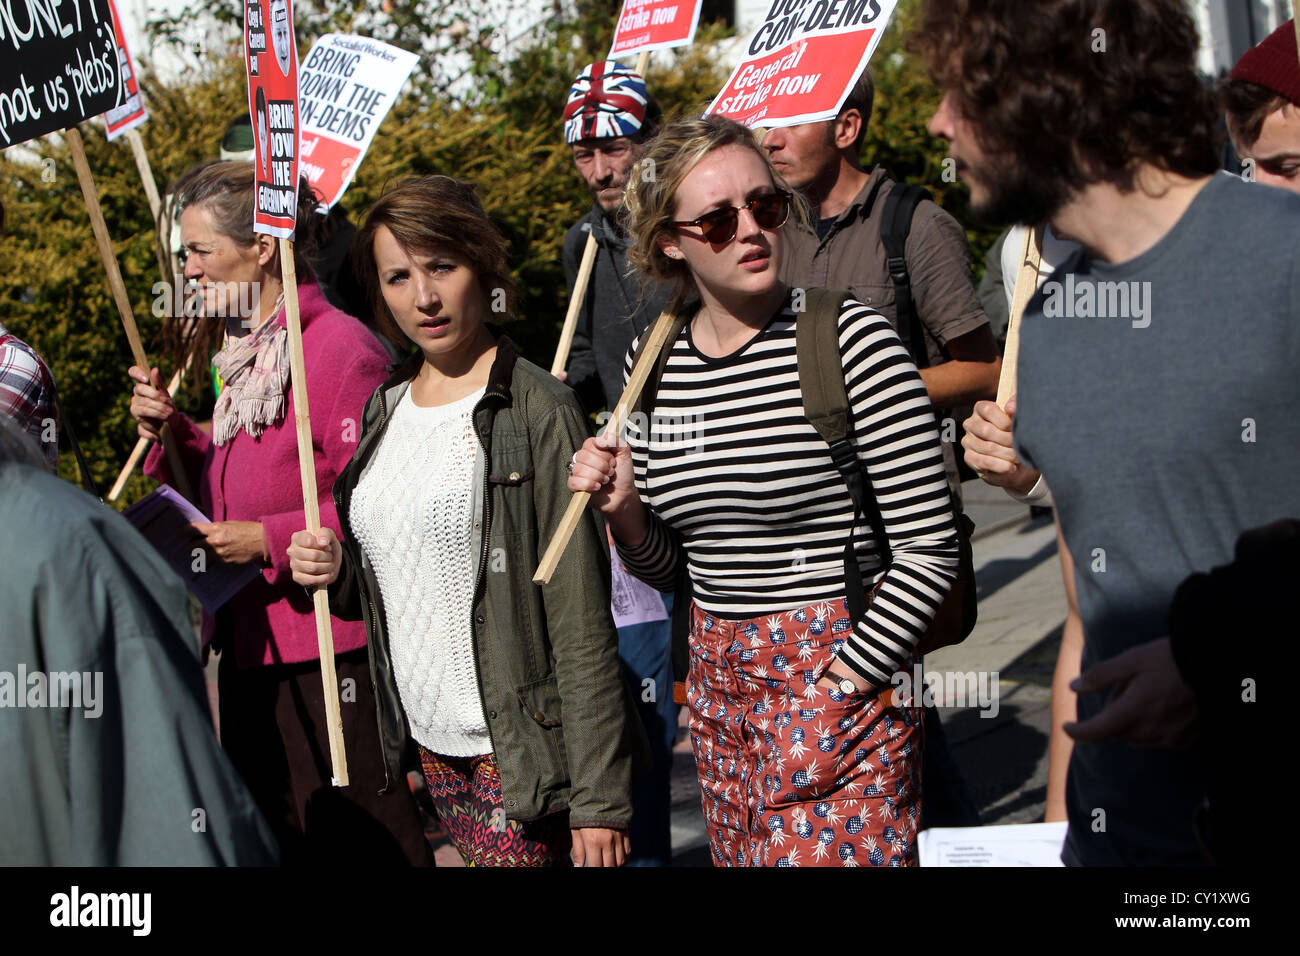 Protesters pictured during a protest against Government cuts in Brighton, East Sussex, UK. - Stock Image